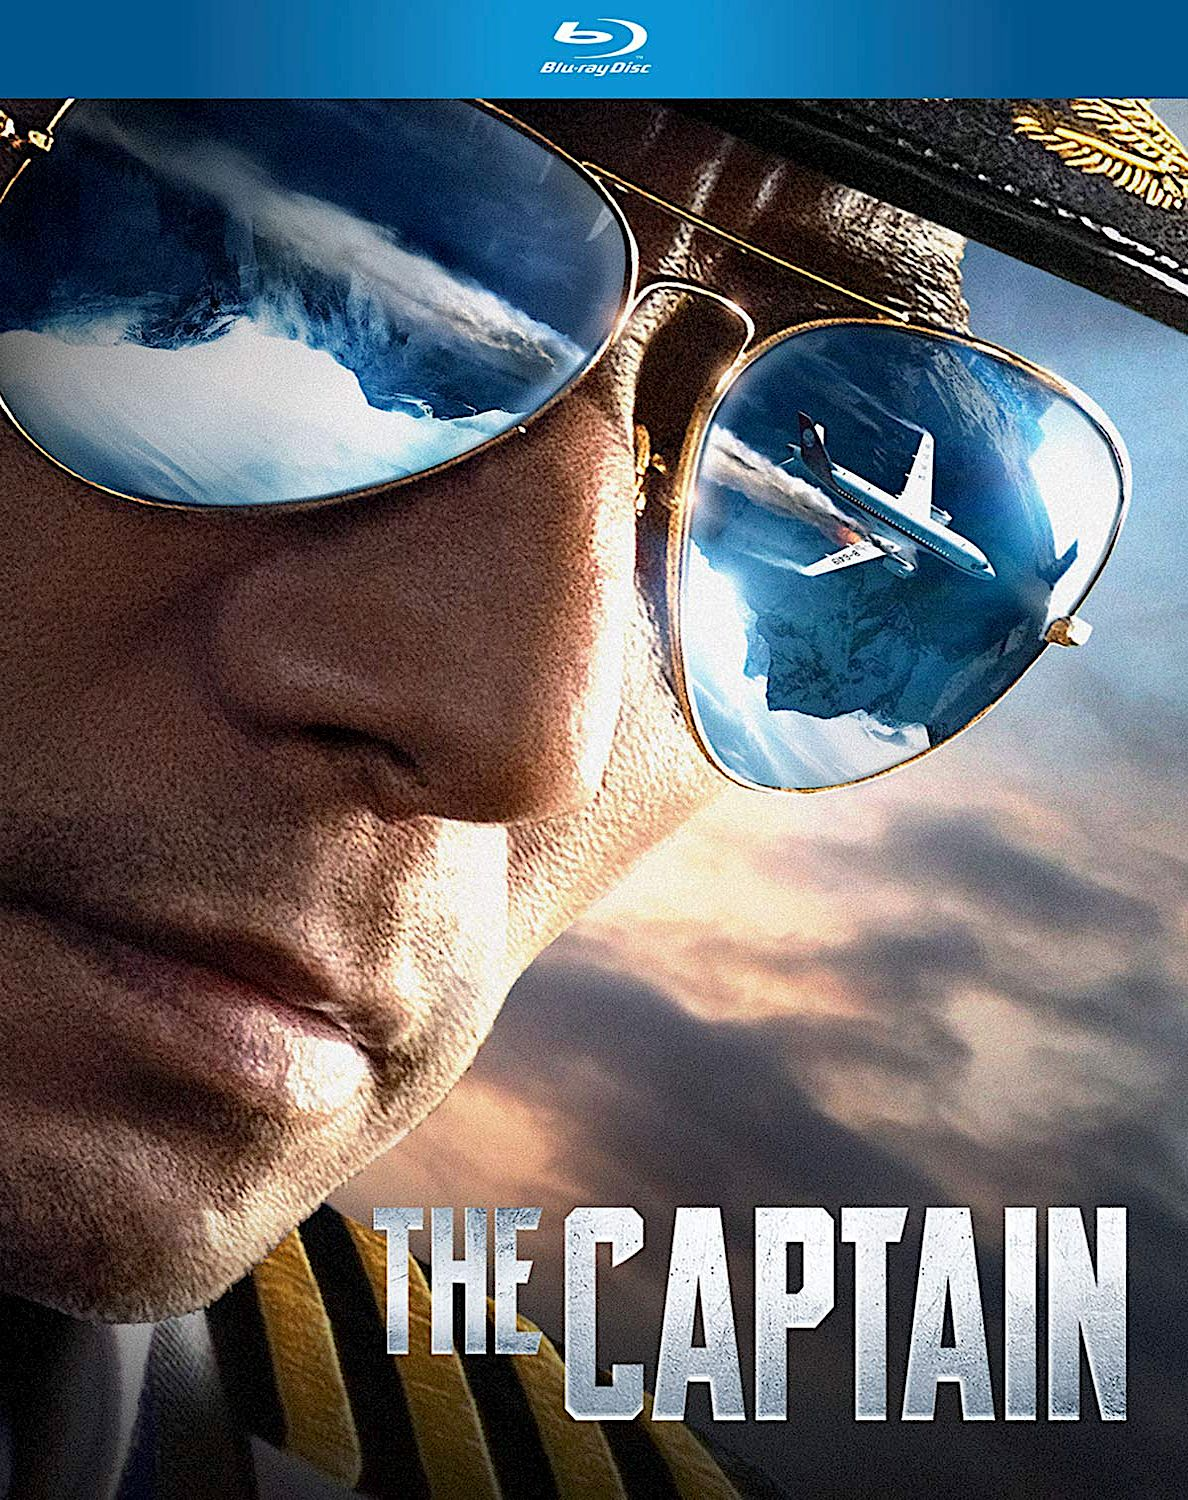 THE CAPTAIN BLURAY (WELL GO USA) in 2020 Movie trailers